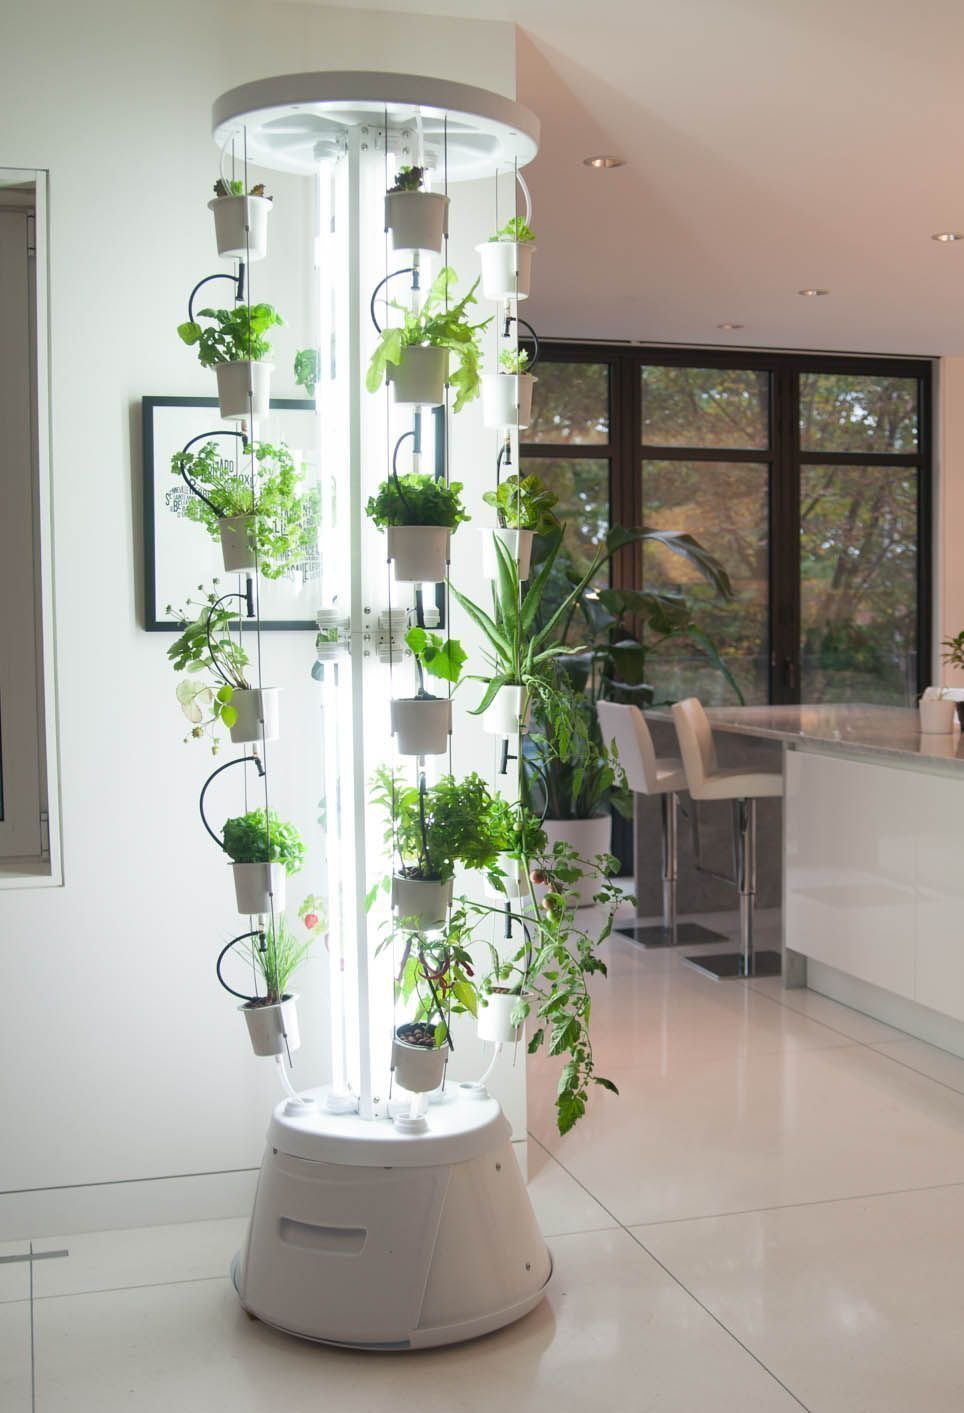 The NutriTower is a complete vertical hydroponic gardening